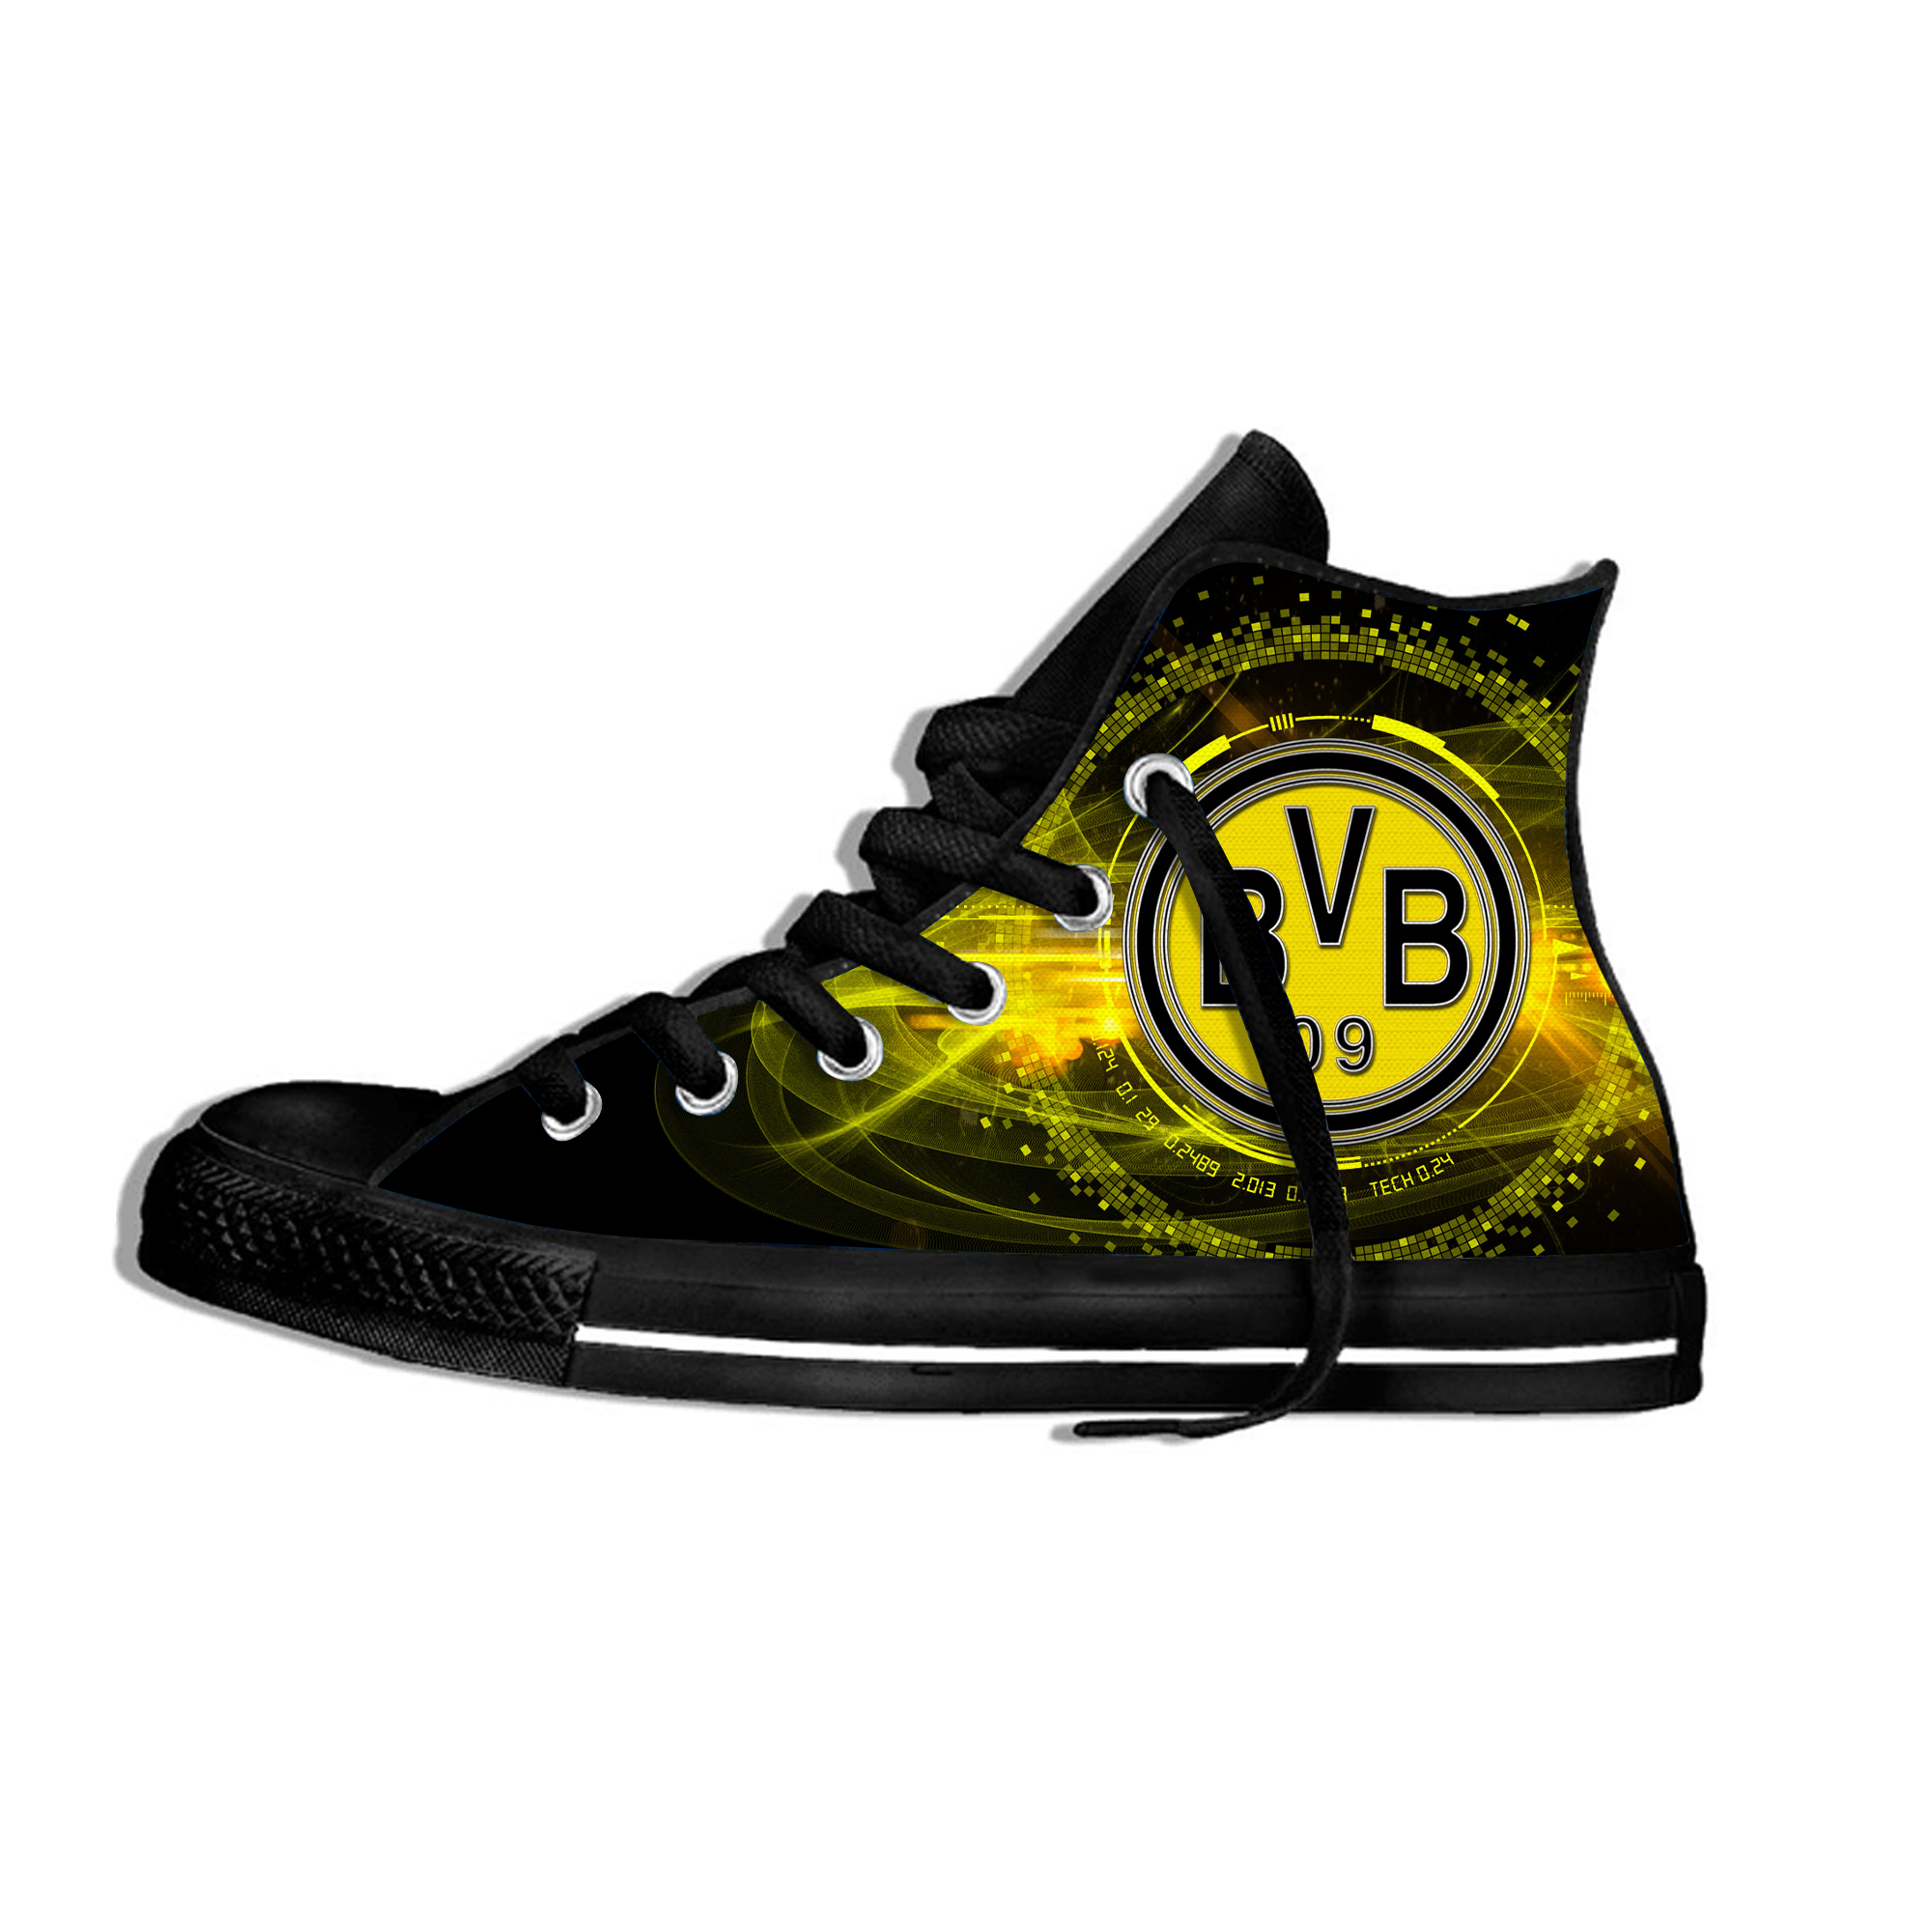 Dortmund Lightweight Soccer Borussia FC Fans Men's/women's Fashion Shoes  Club Breathable High Top Casual Sneakers